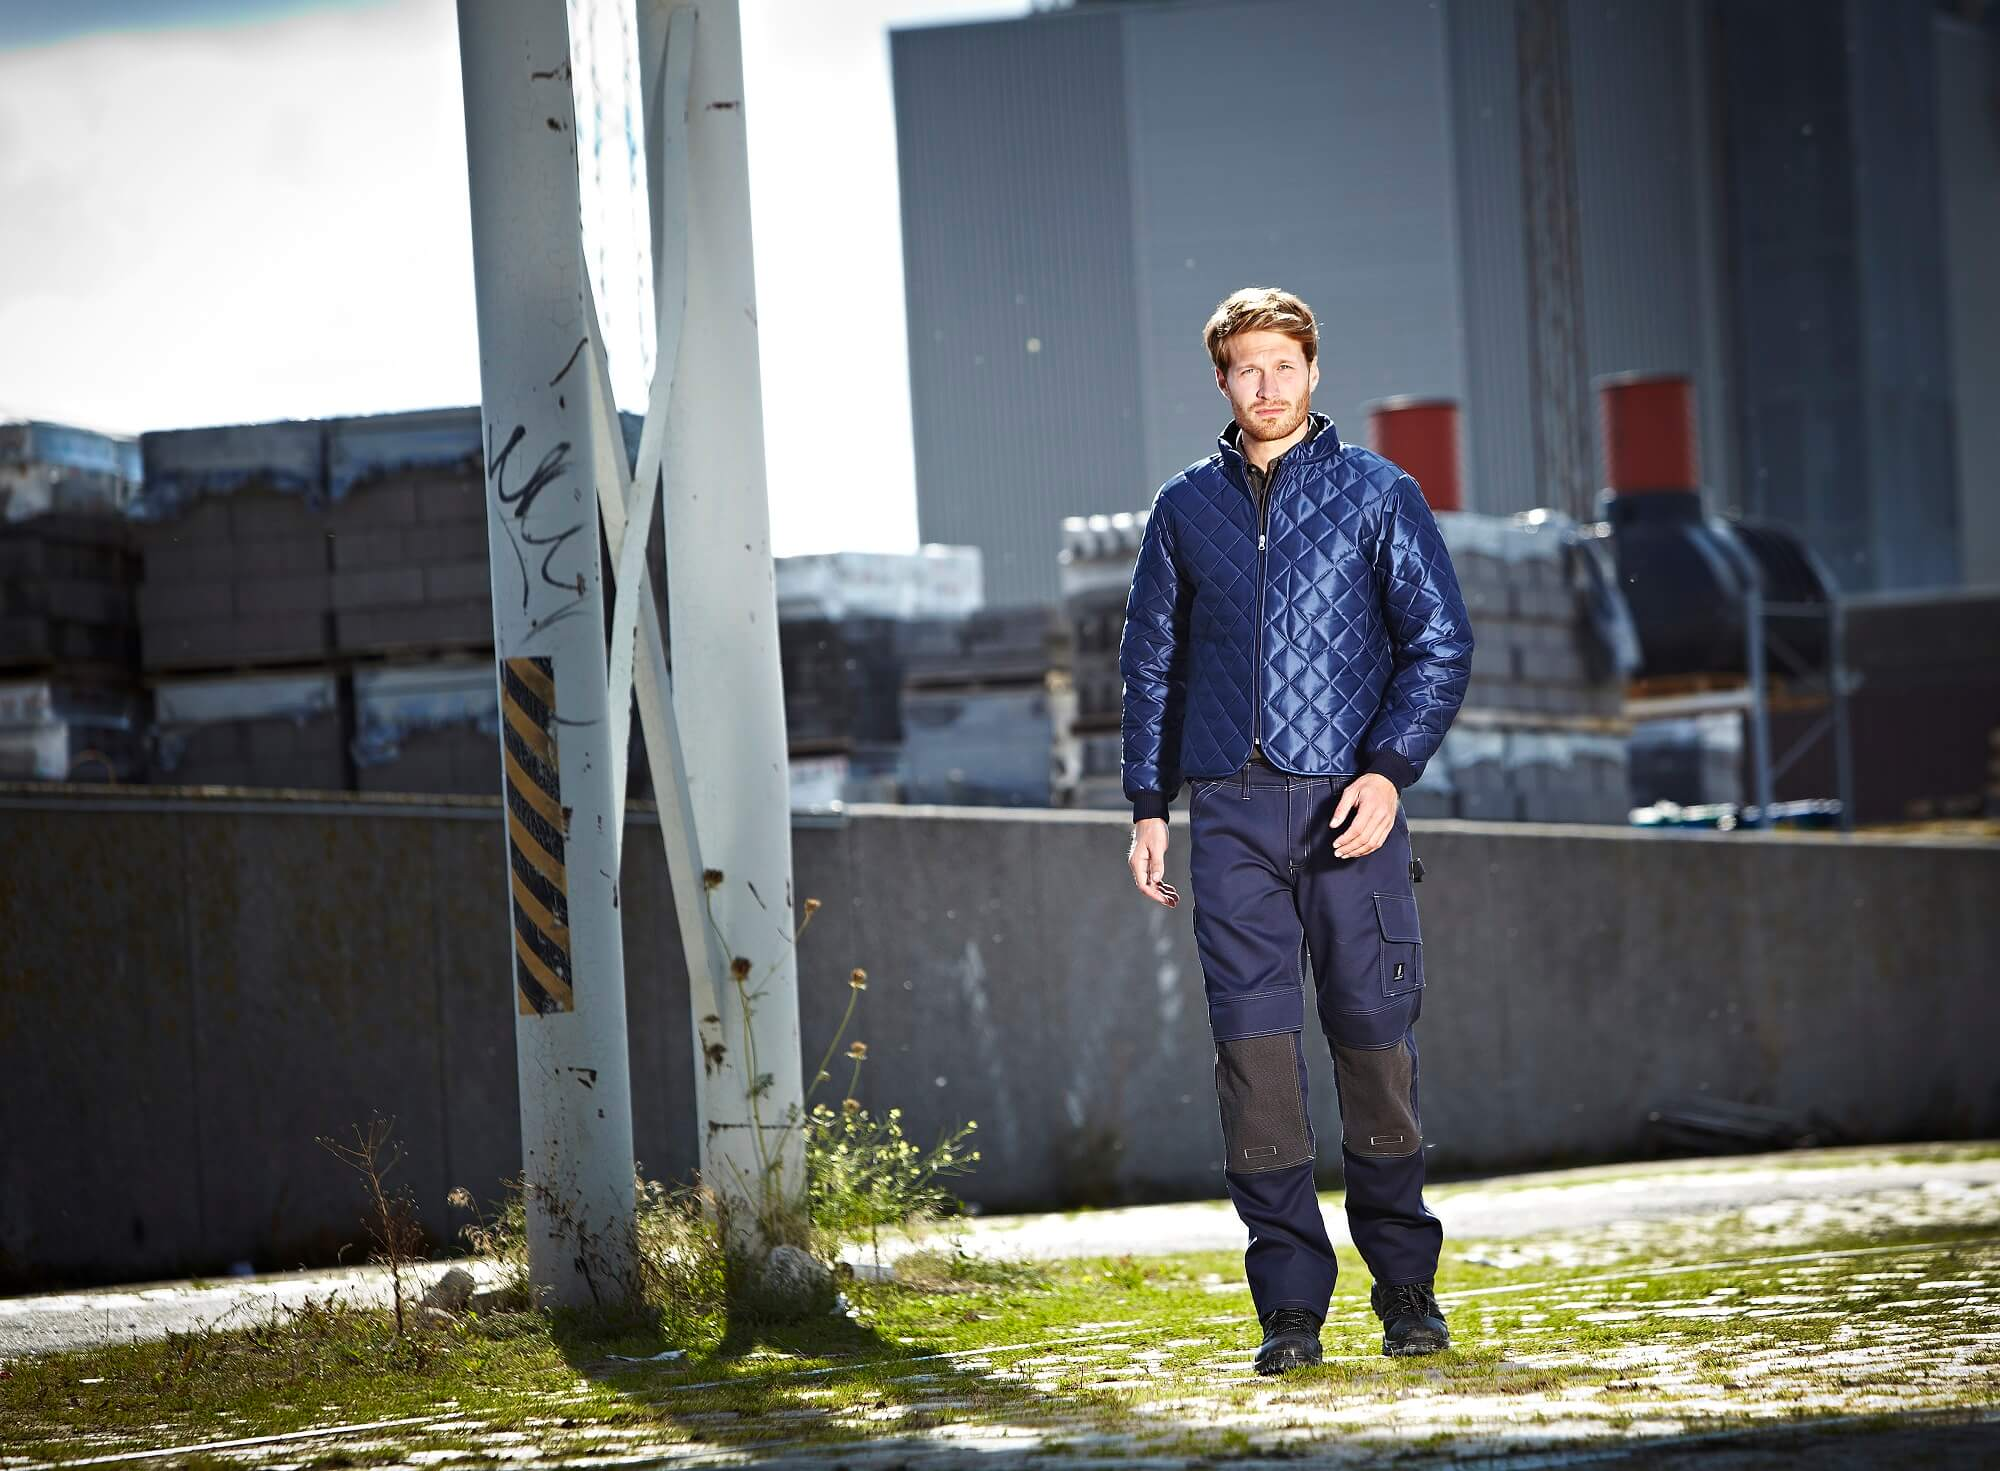 Environment - Thermal Jacket & Work Pants - Navy